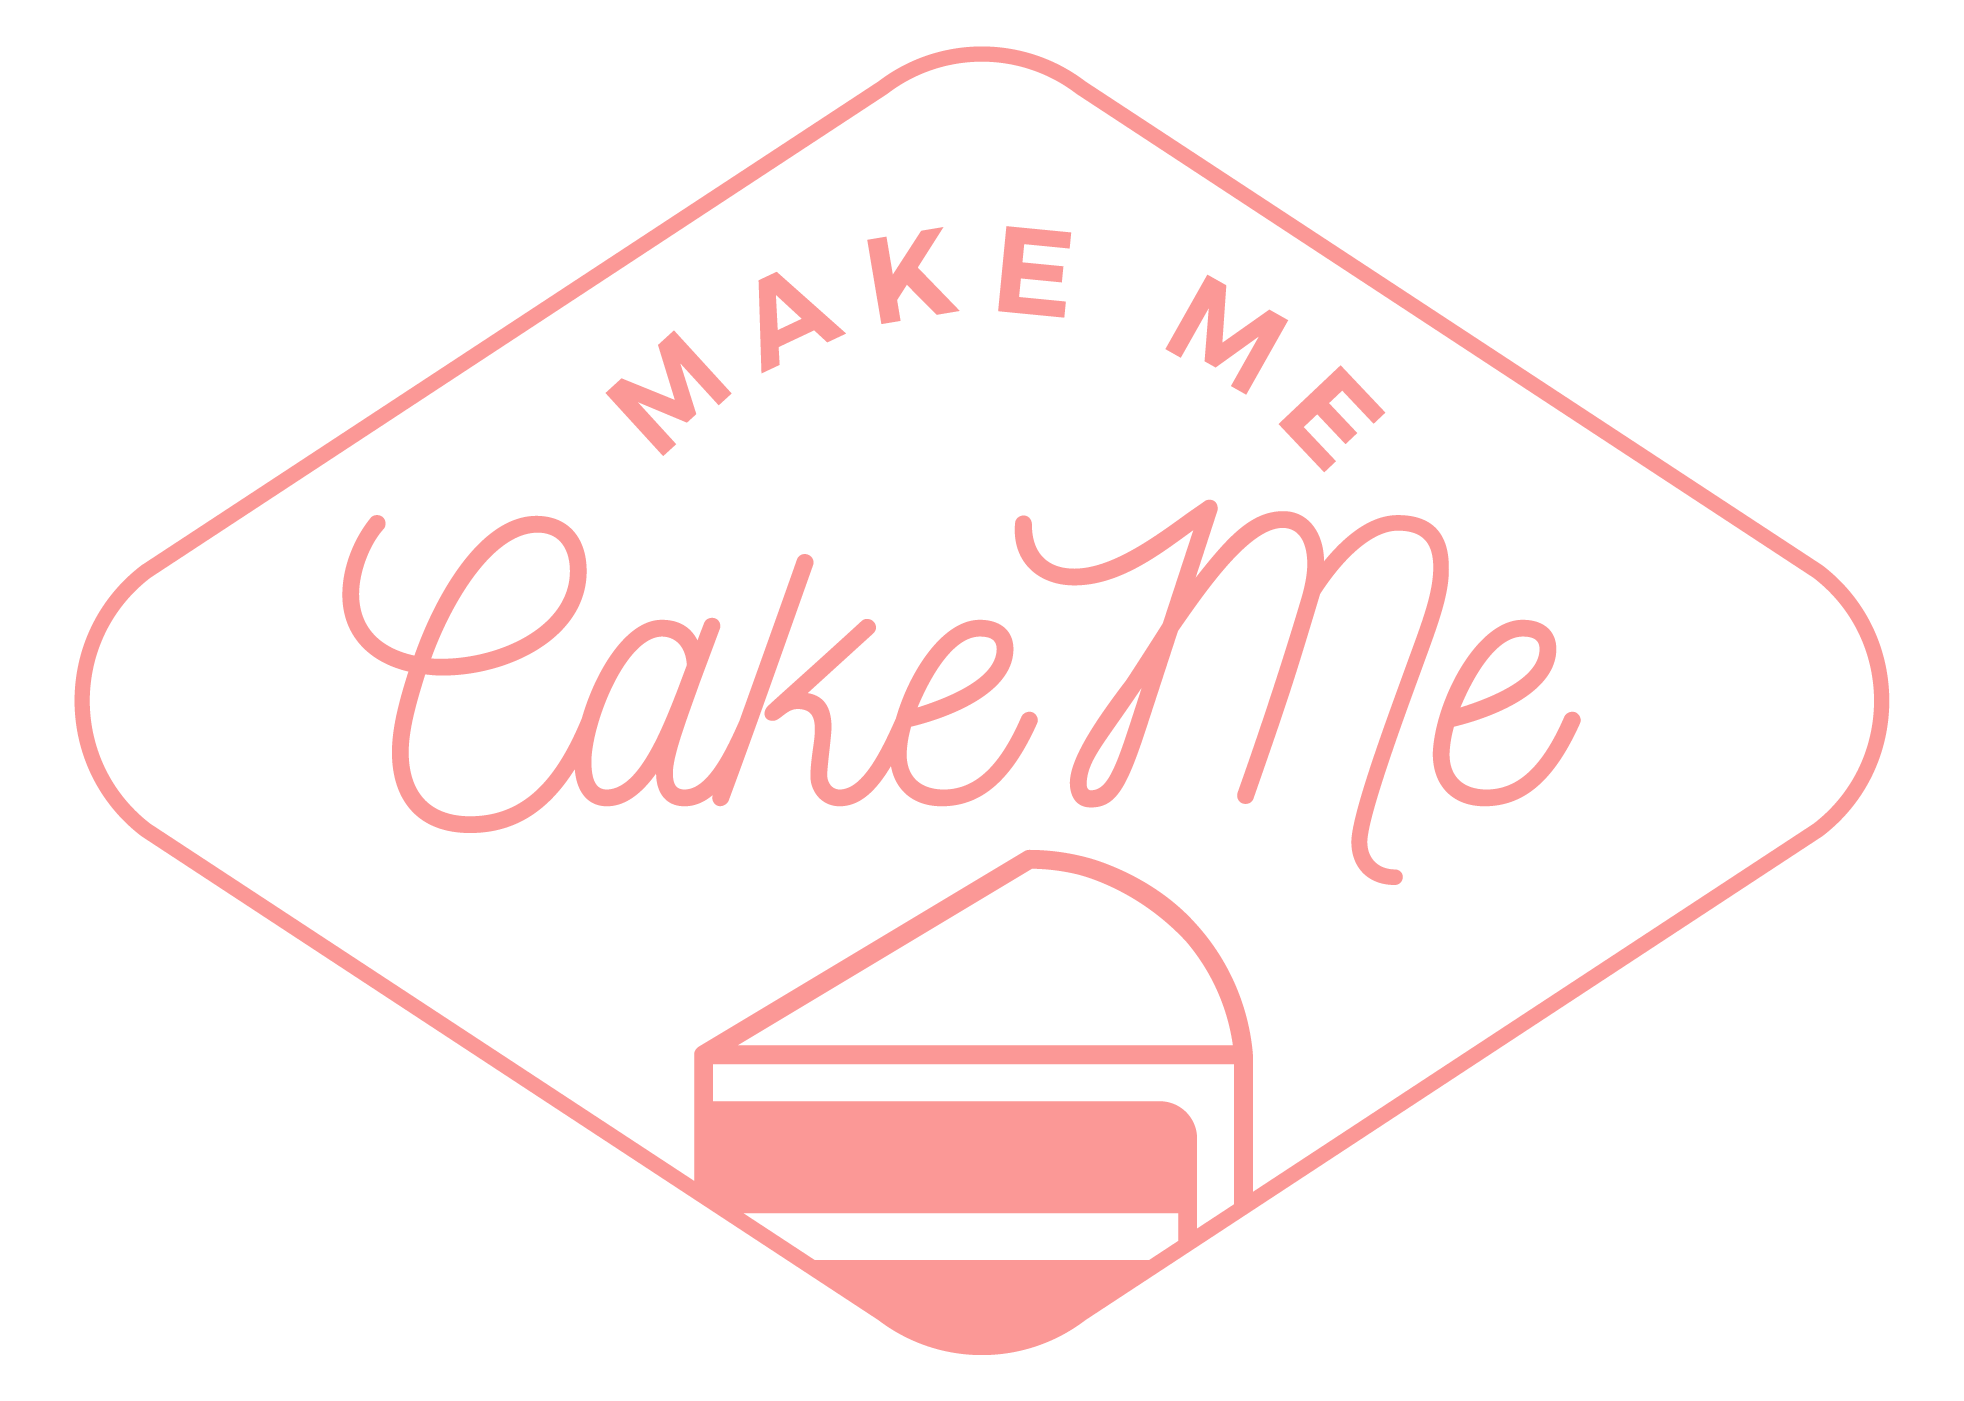 Make Me Cake Me | Decorating Cookies and Baking Sweets